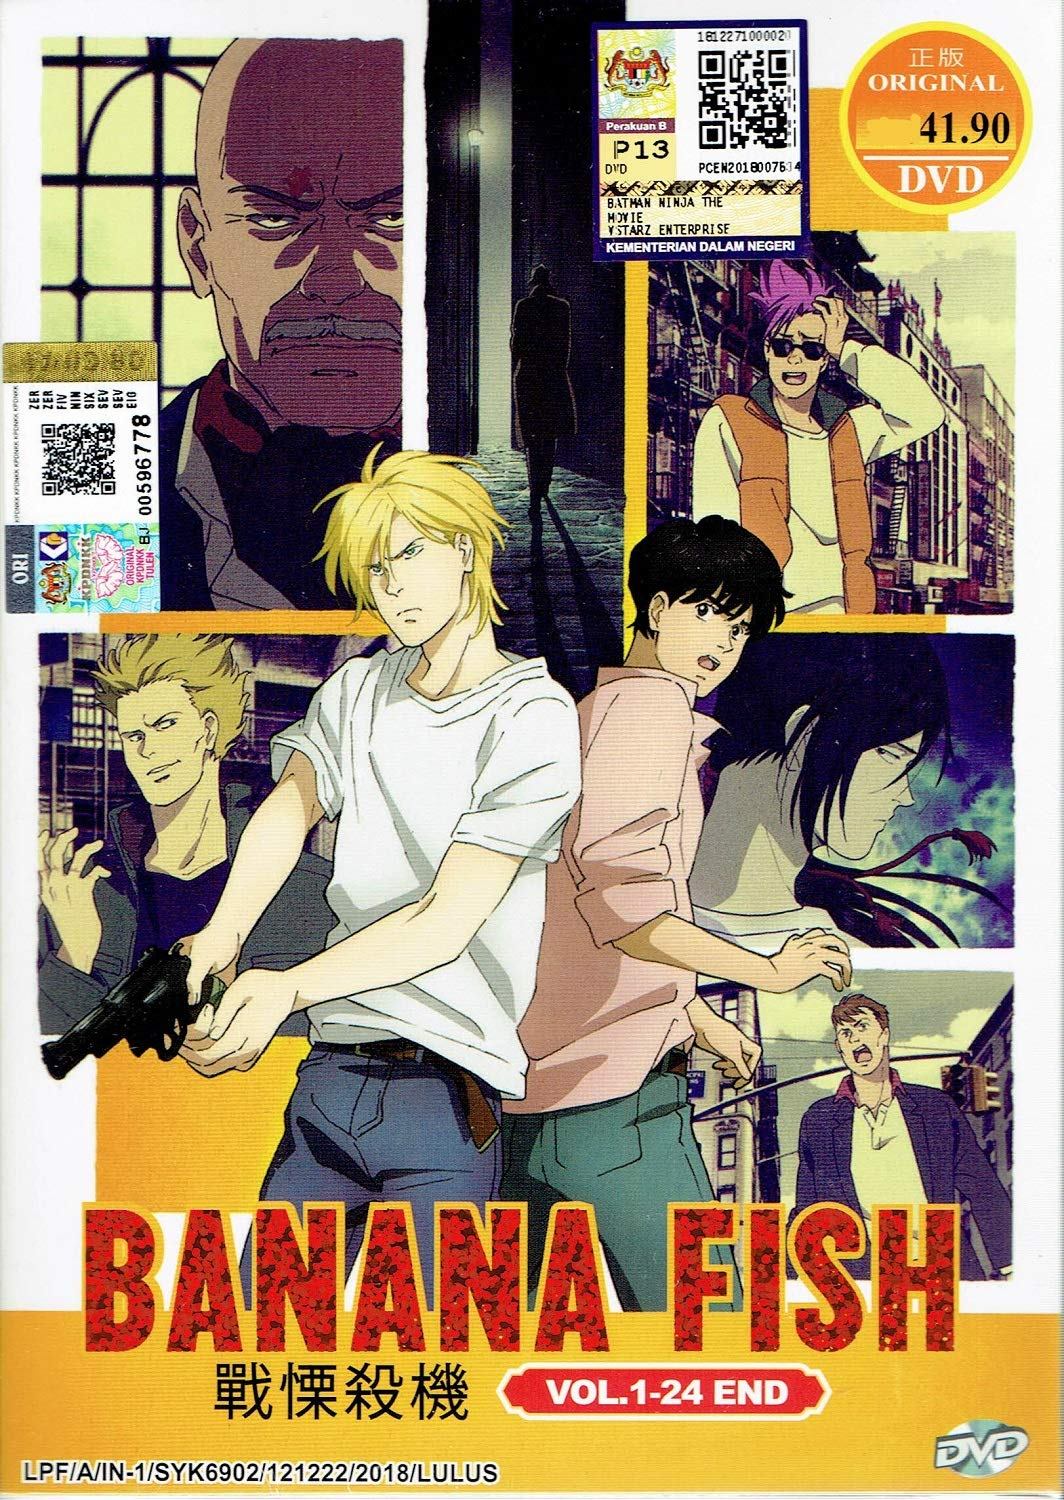 Amazon.com: BANANA FISH - COMPLETE ANIME TV SERIES DVD BOX ...